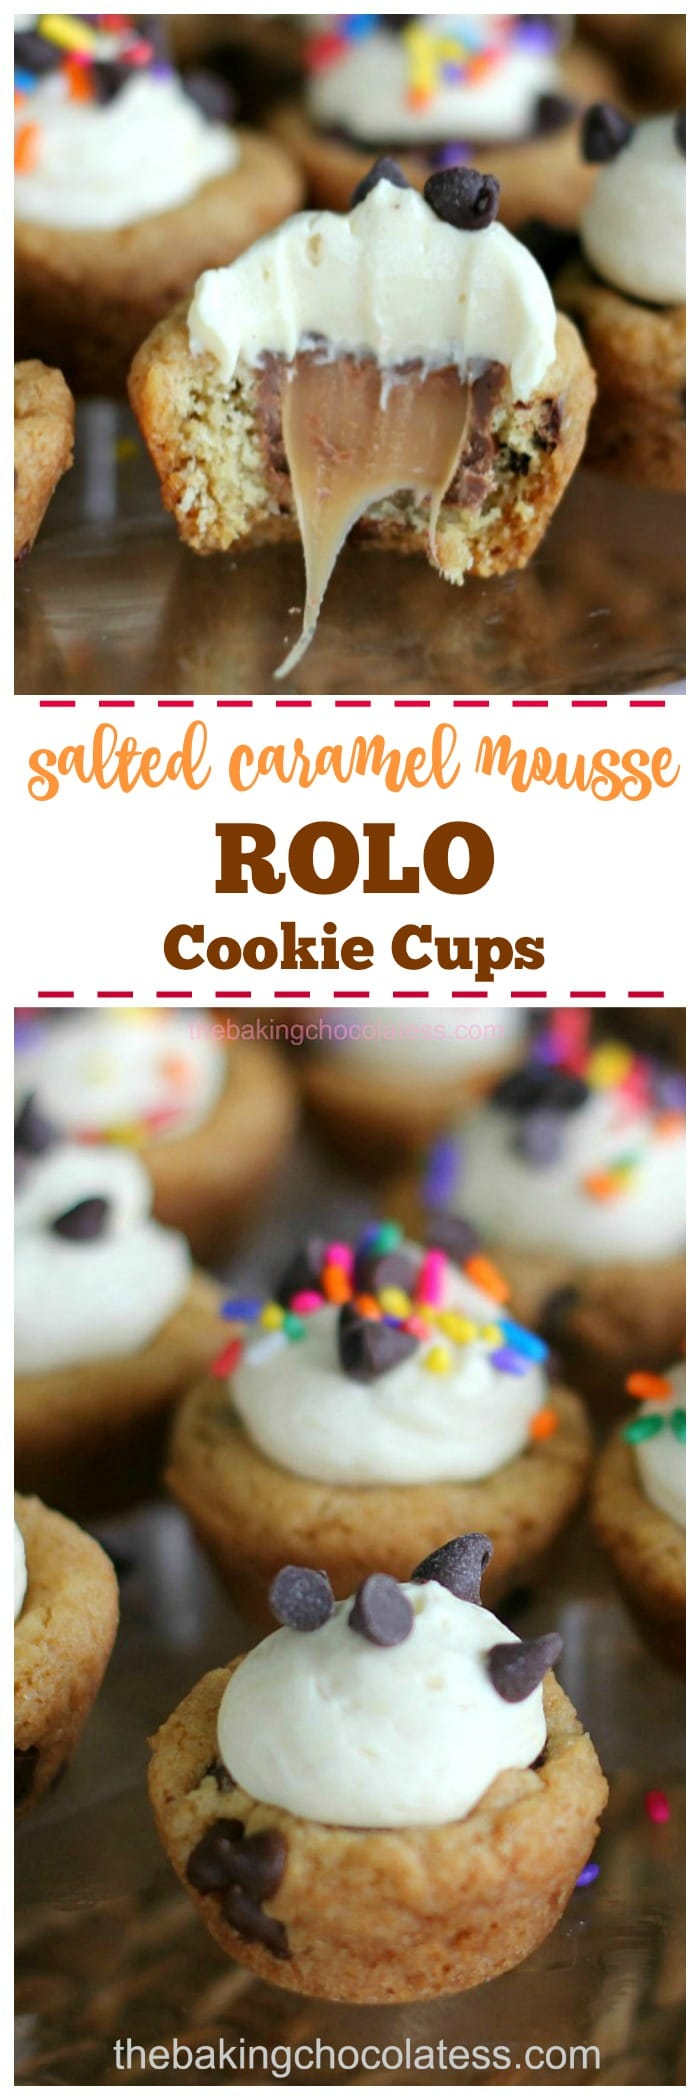 Salted Caramel Mousse ROLO Cookie Cups - Who could resist these little gooey cookie cups loaded with mini chocolate chips, ROLOs and a fluffy caramel mousse filling?  Not I  #rolo #cookies #cups #caramel #mousse